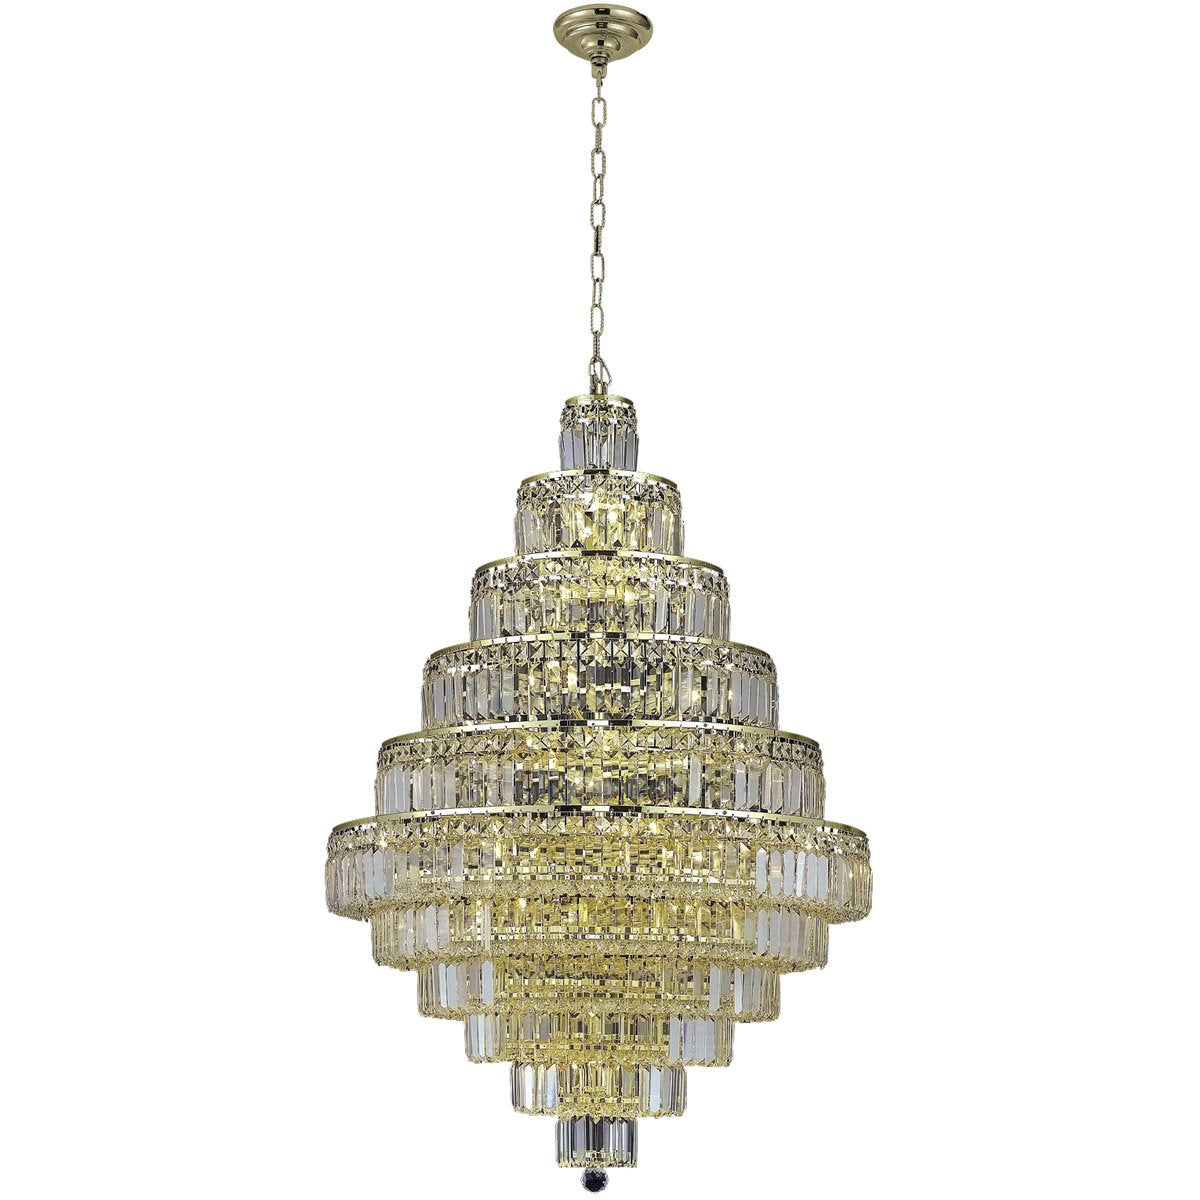 Maxime 32 Crystal Chandelier With 30 Lights - Gold Finish And Clear / Swarovski Elements Crystal Chandelier